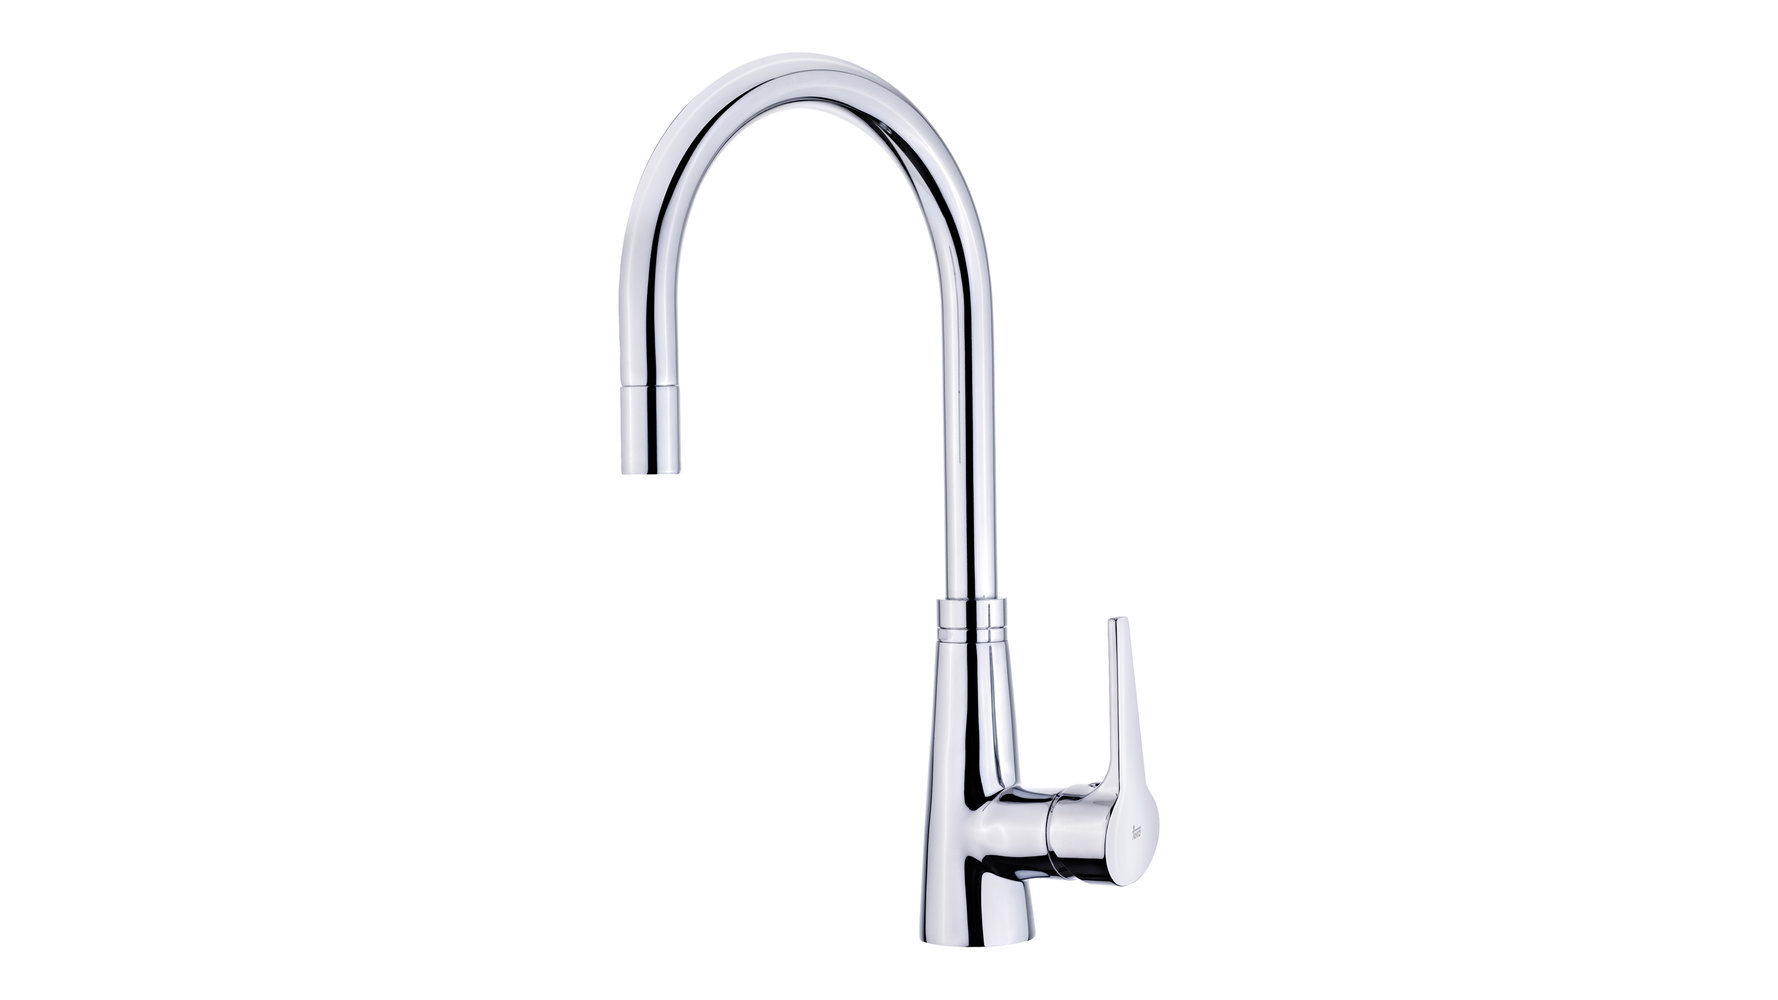 Kitchen faucet mixer with high spout and removable rotating function maneral 1